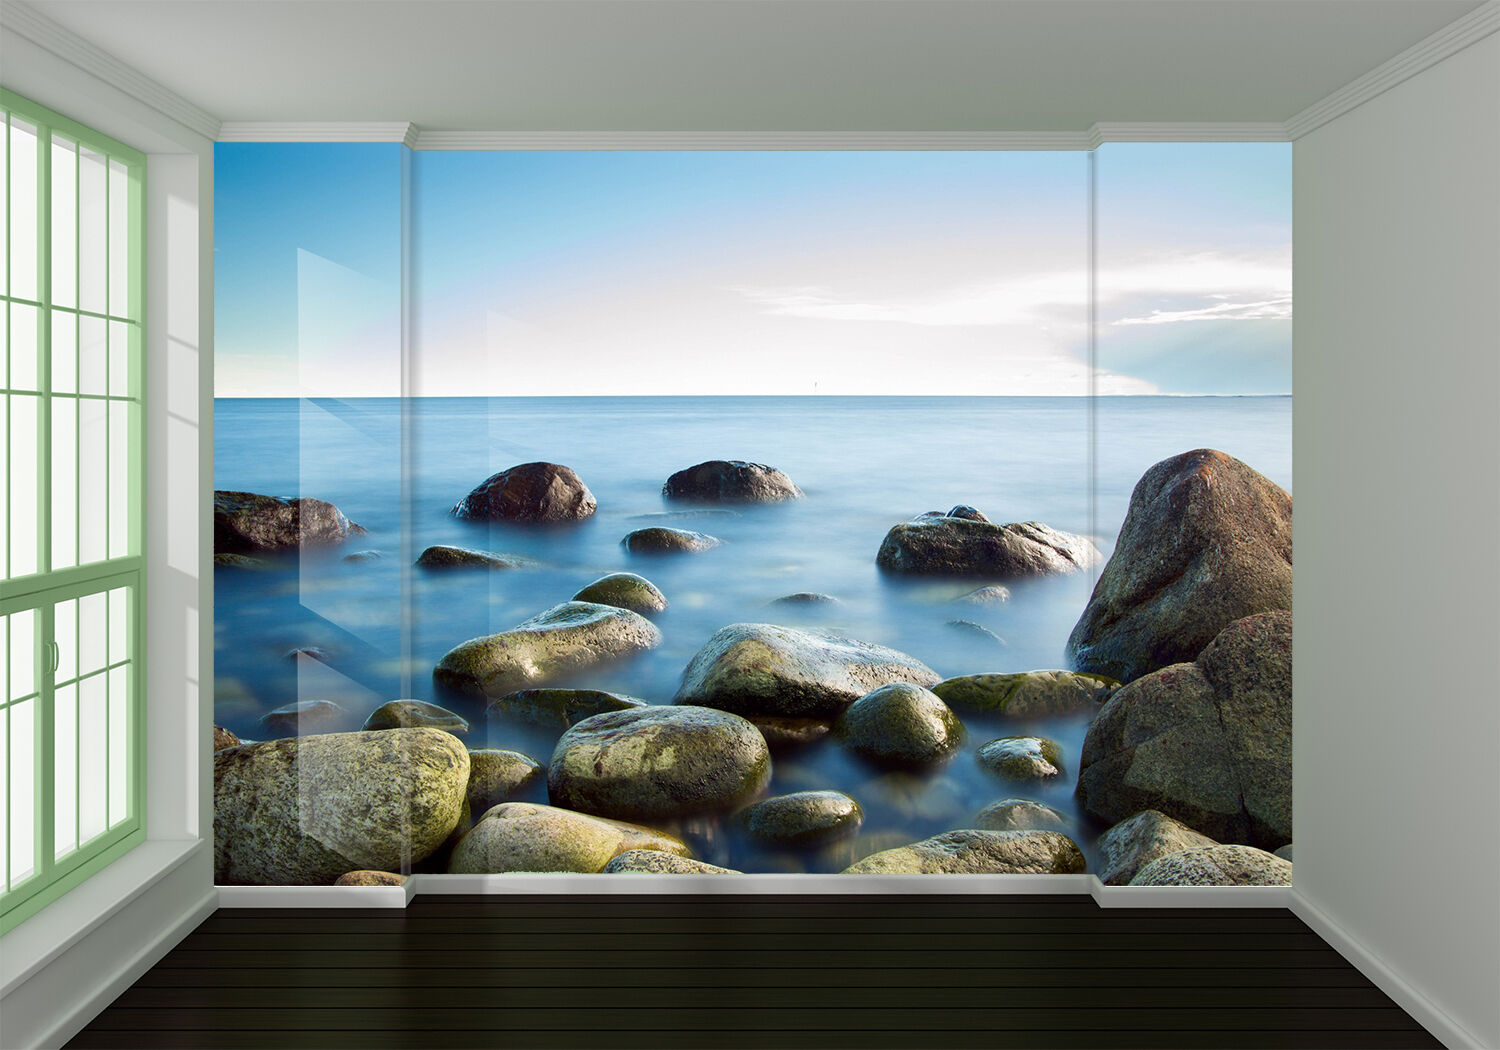 3D Stone And Sea 656 Wall Paper Wall Print Decal Wall Deco Indoor Wall